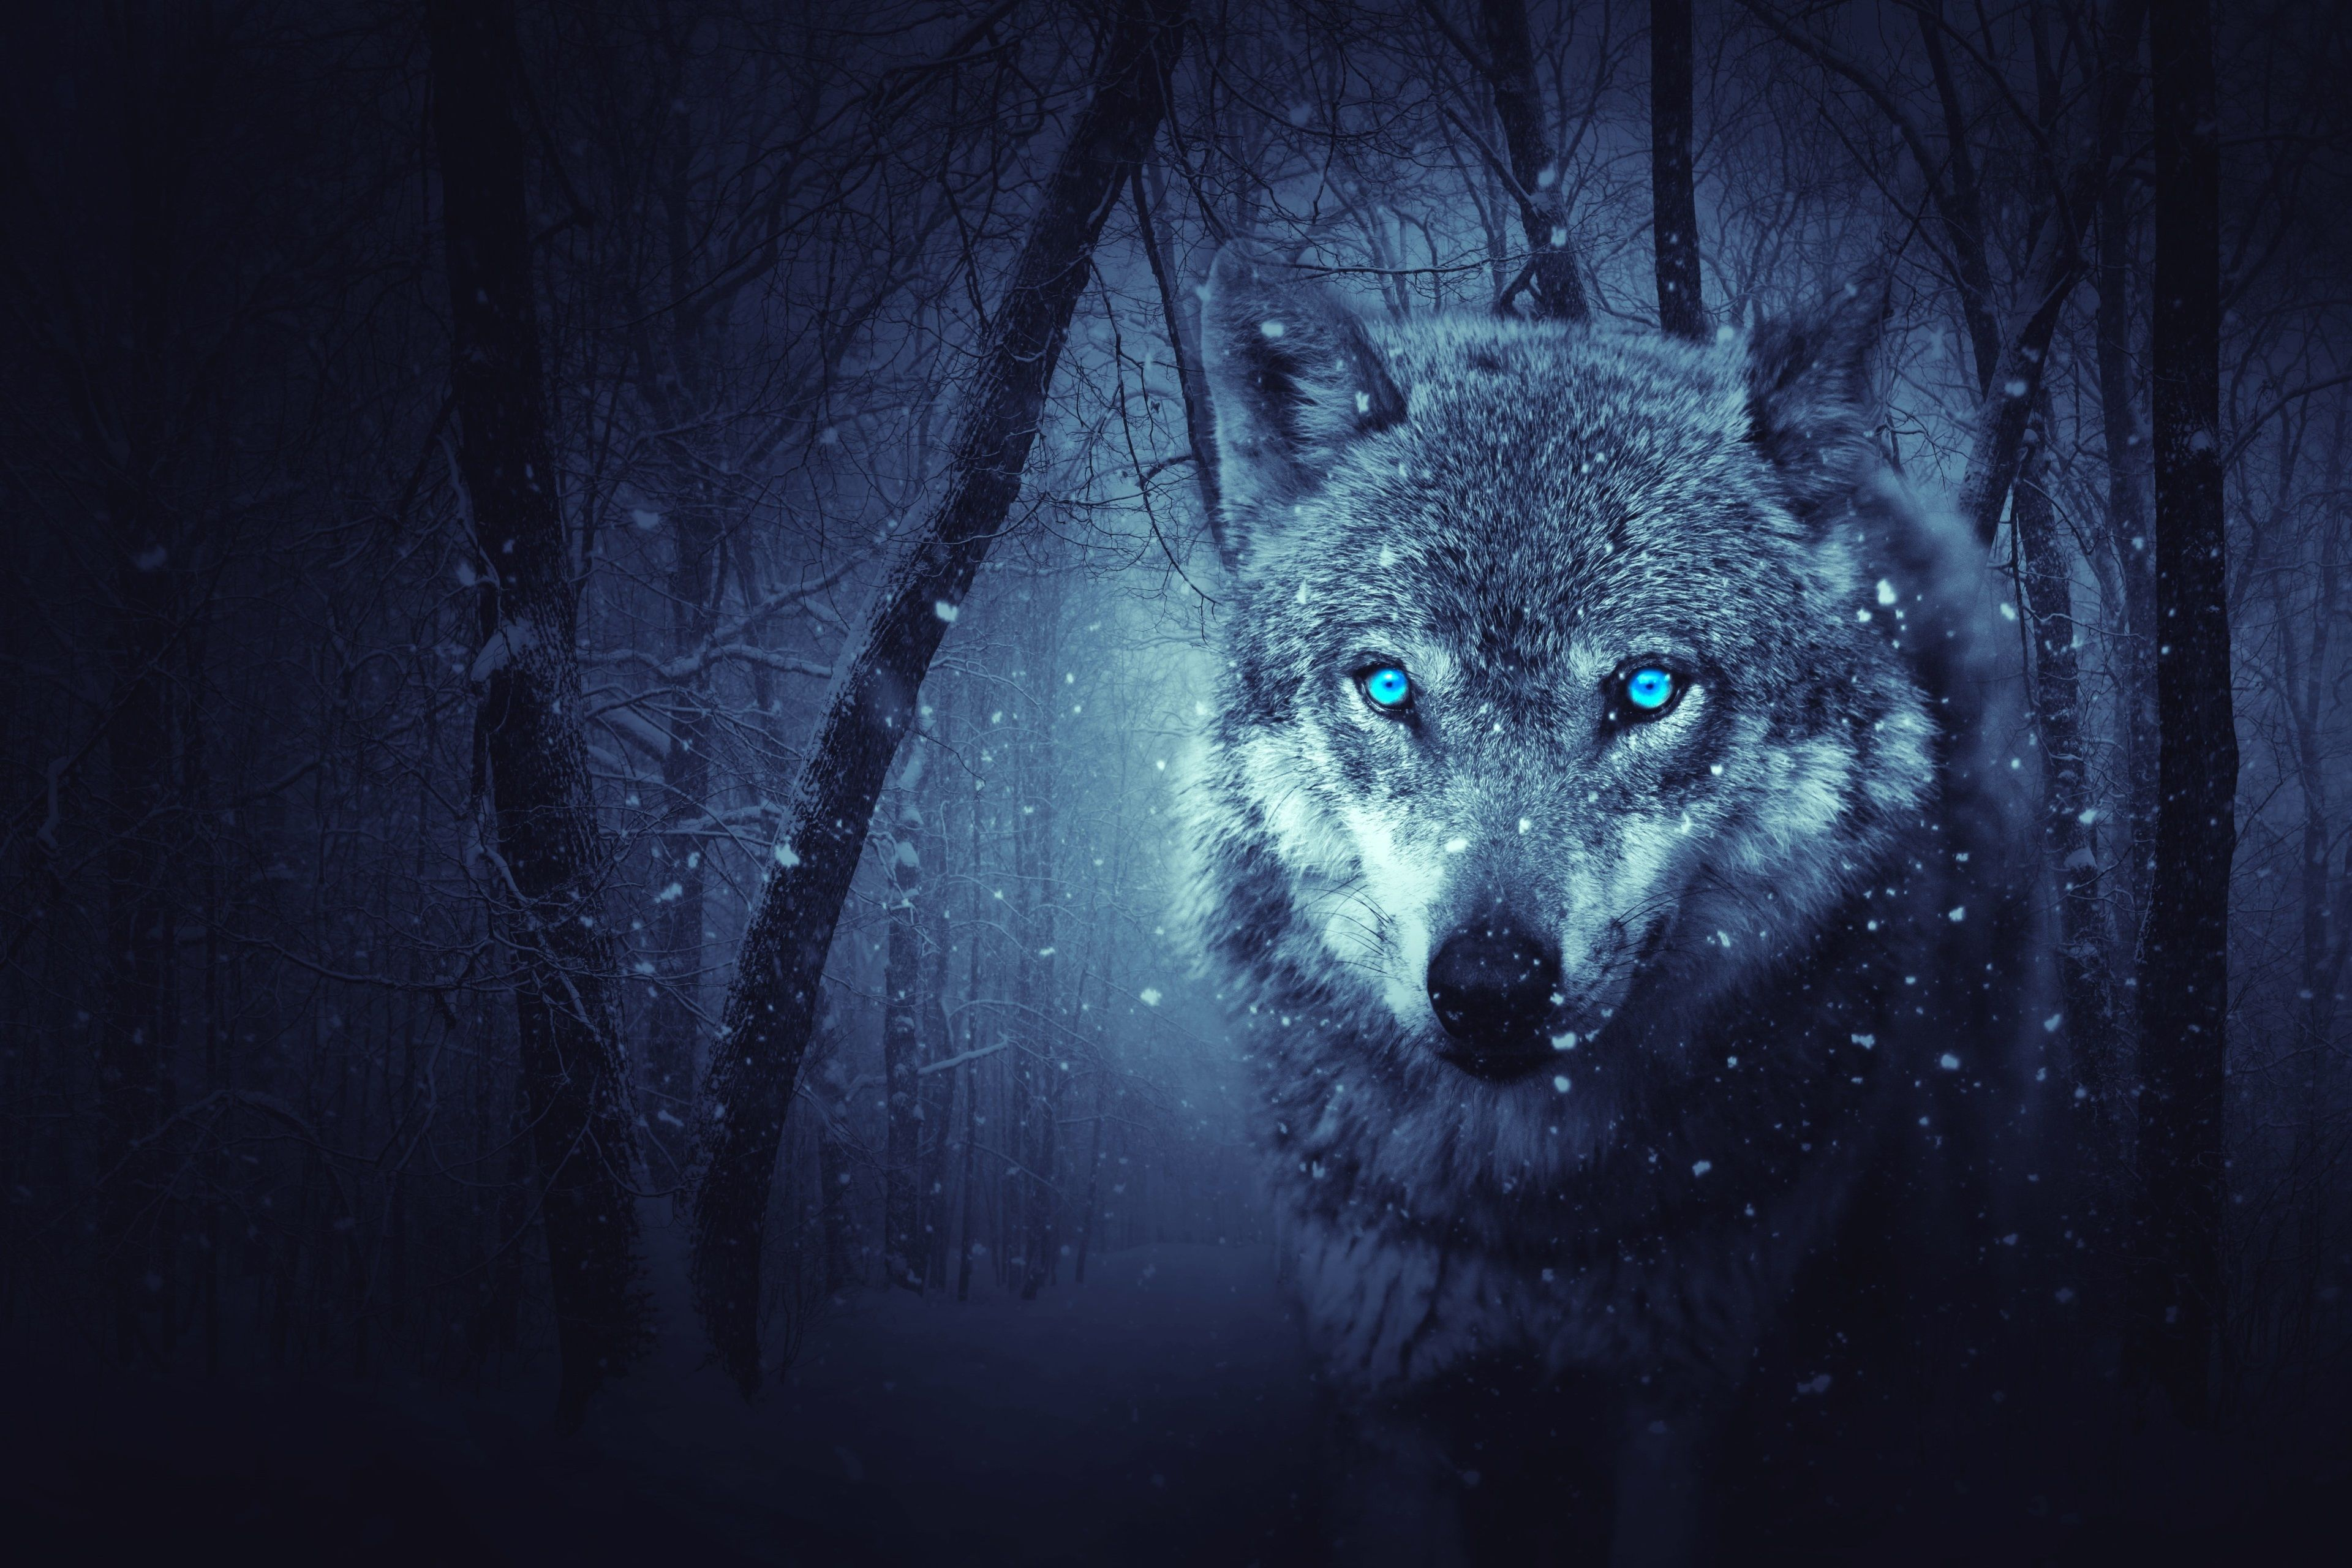 3840x2560 Wild Wolf 4k Pc Wallpaper Hd Wolf Wallpaper Snow Wolf Cat Wallpaper